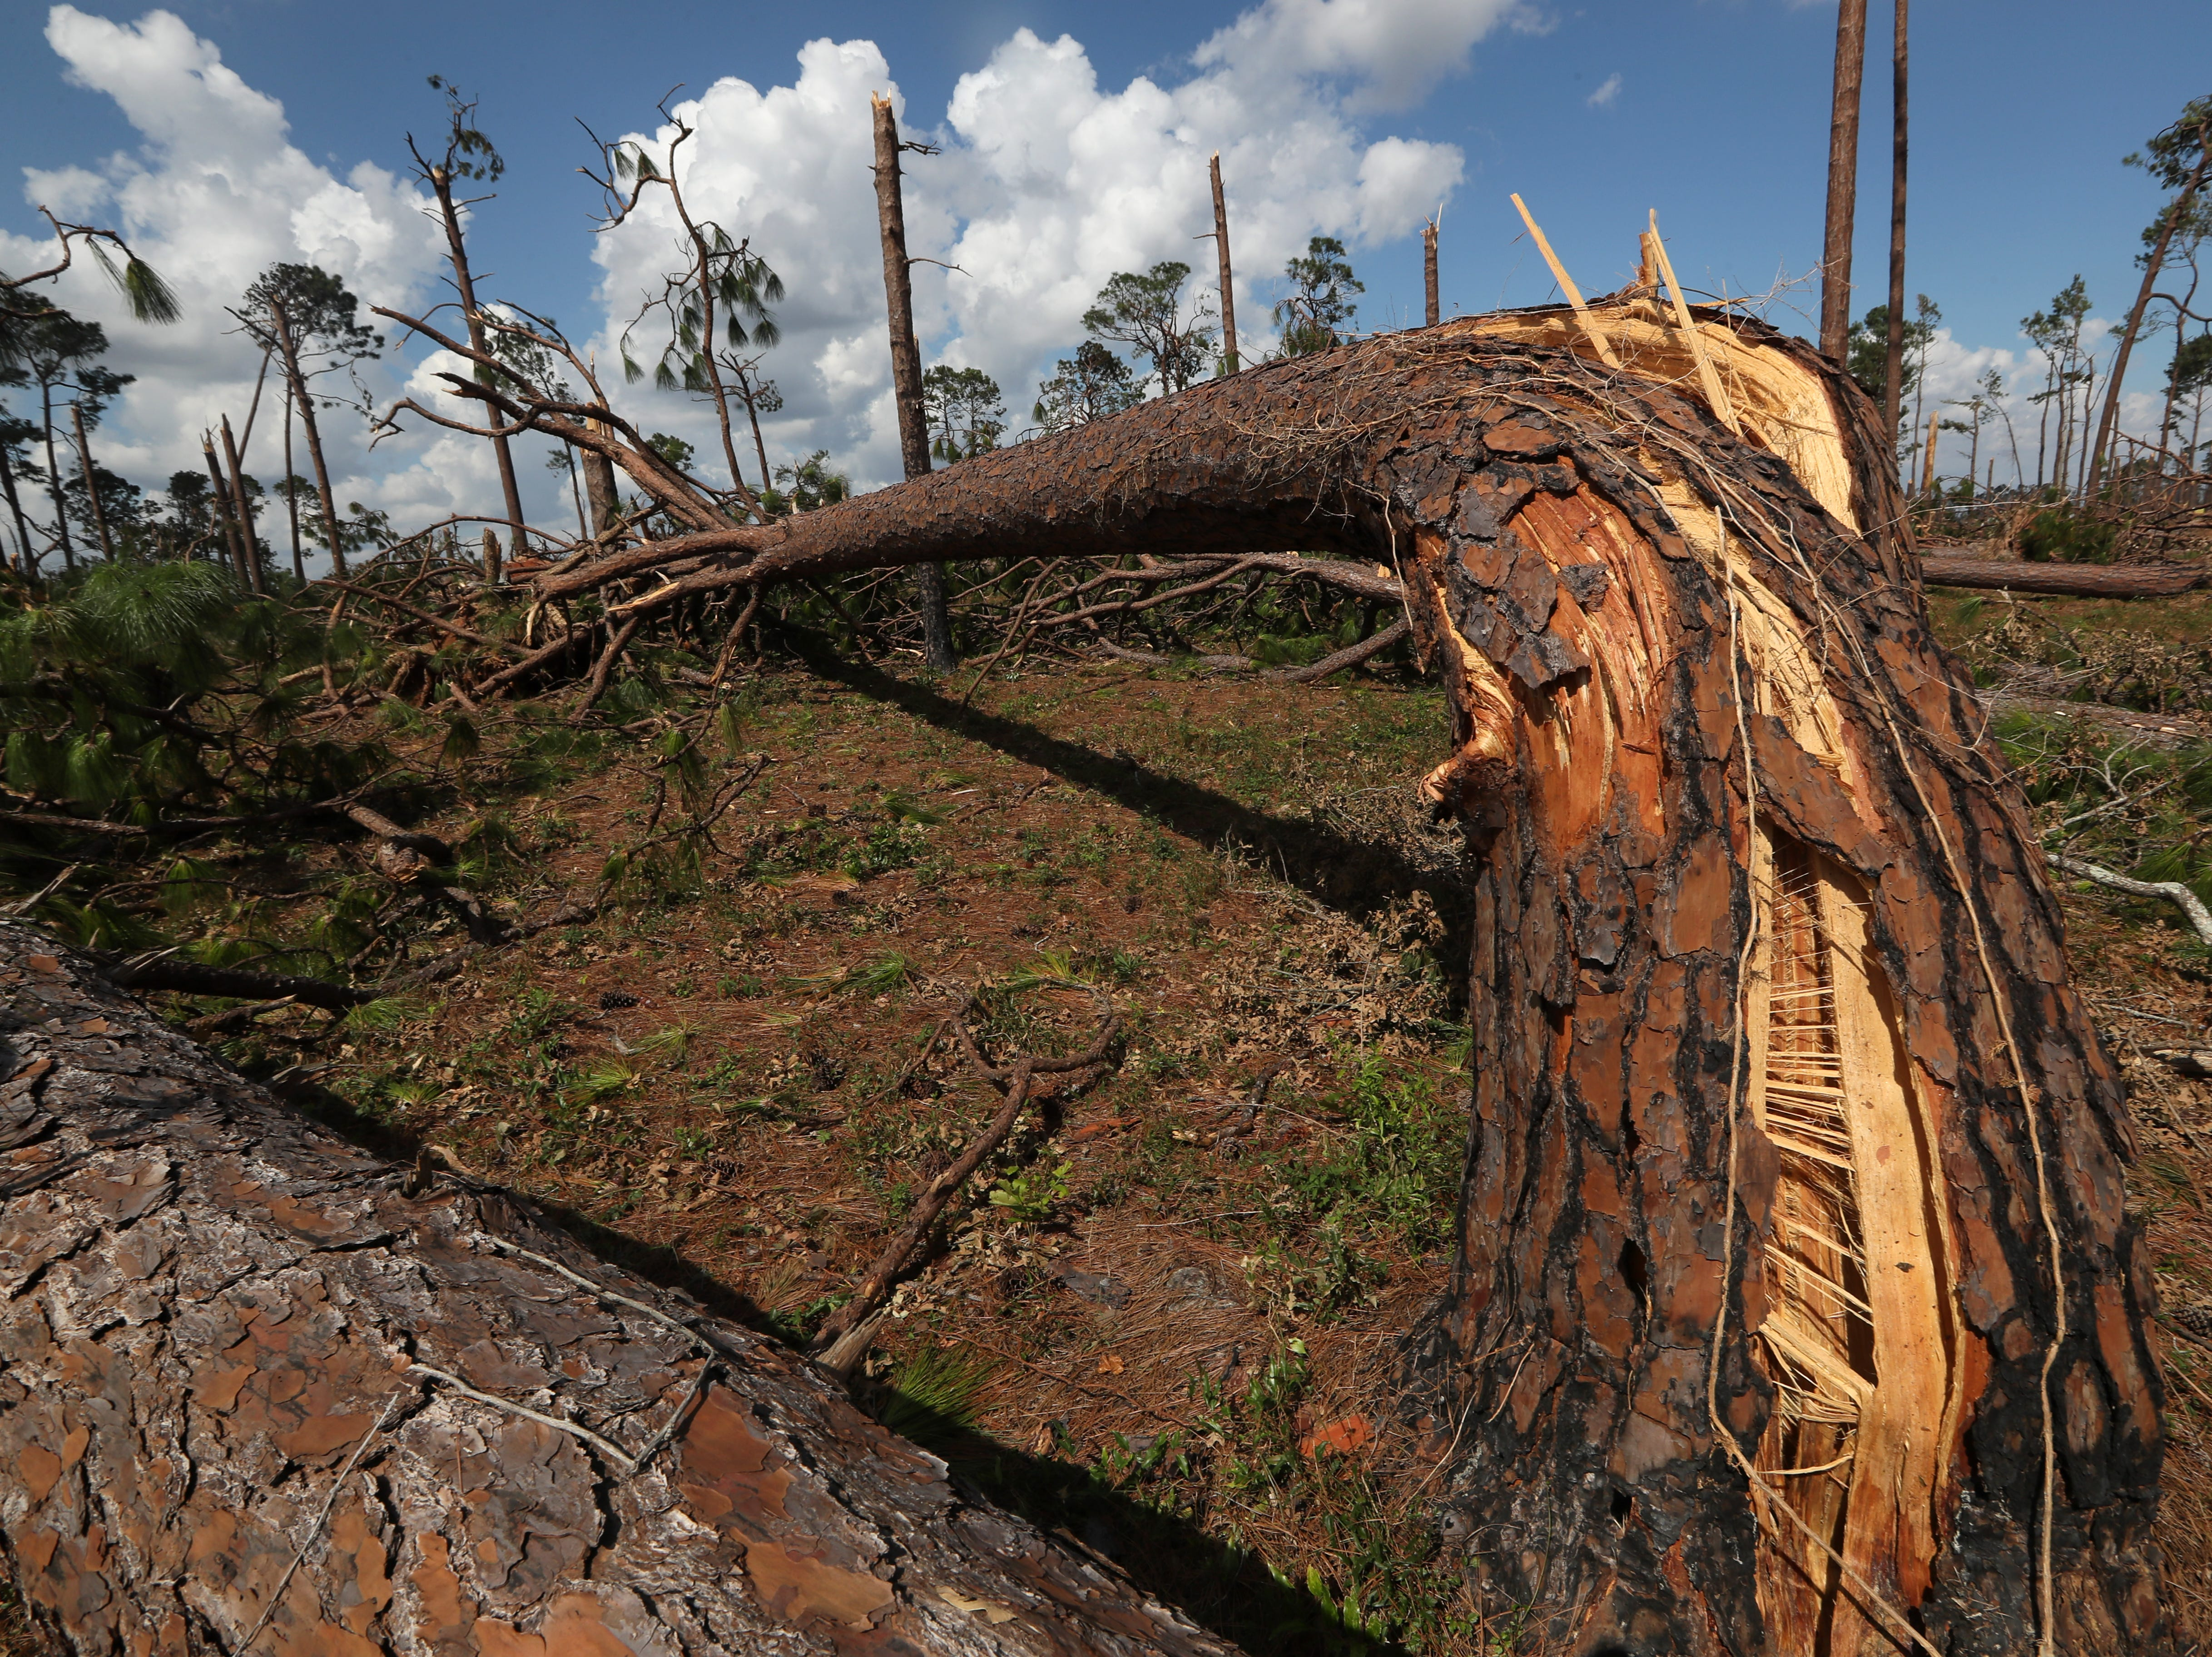 Trees are left mangled and twisted on Highway 90 between Chattahoochee and Sneads along Hurricane Michael's path on Monday, Oct. 15, 2018.